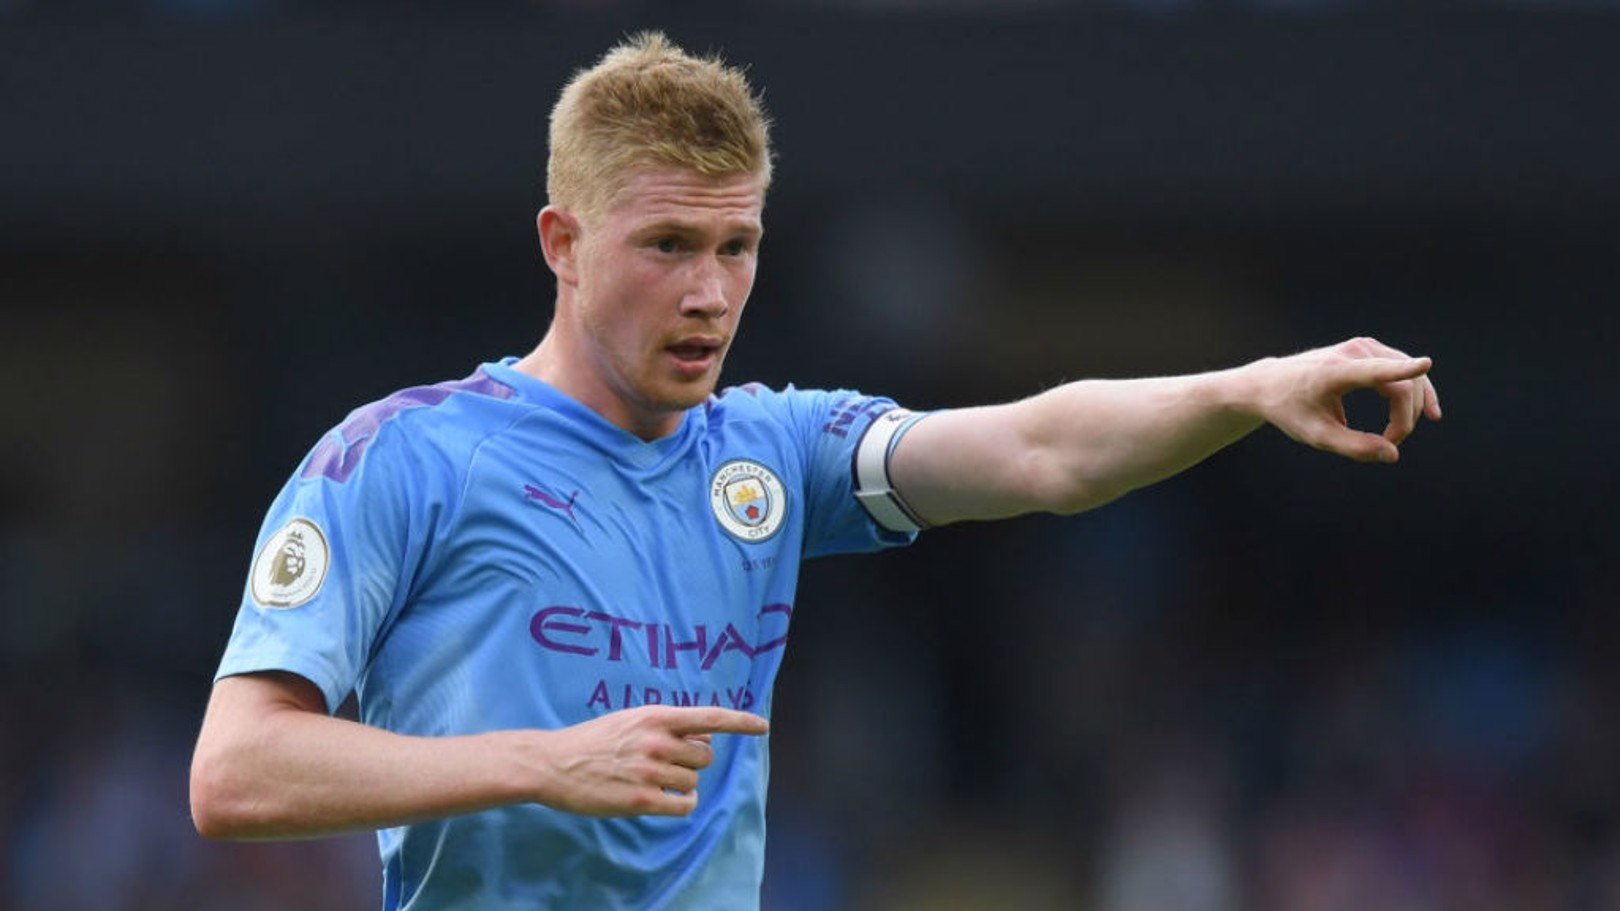 De Bruyne: There is more to come